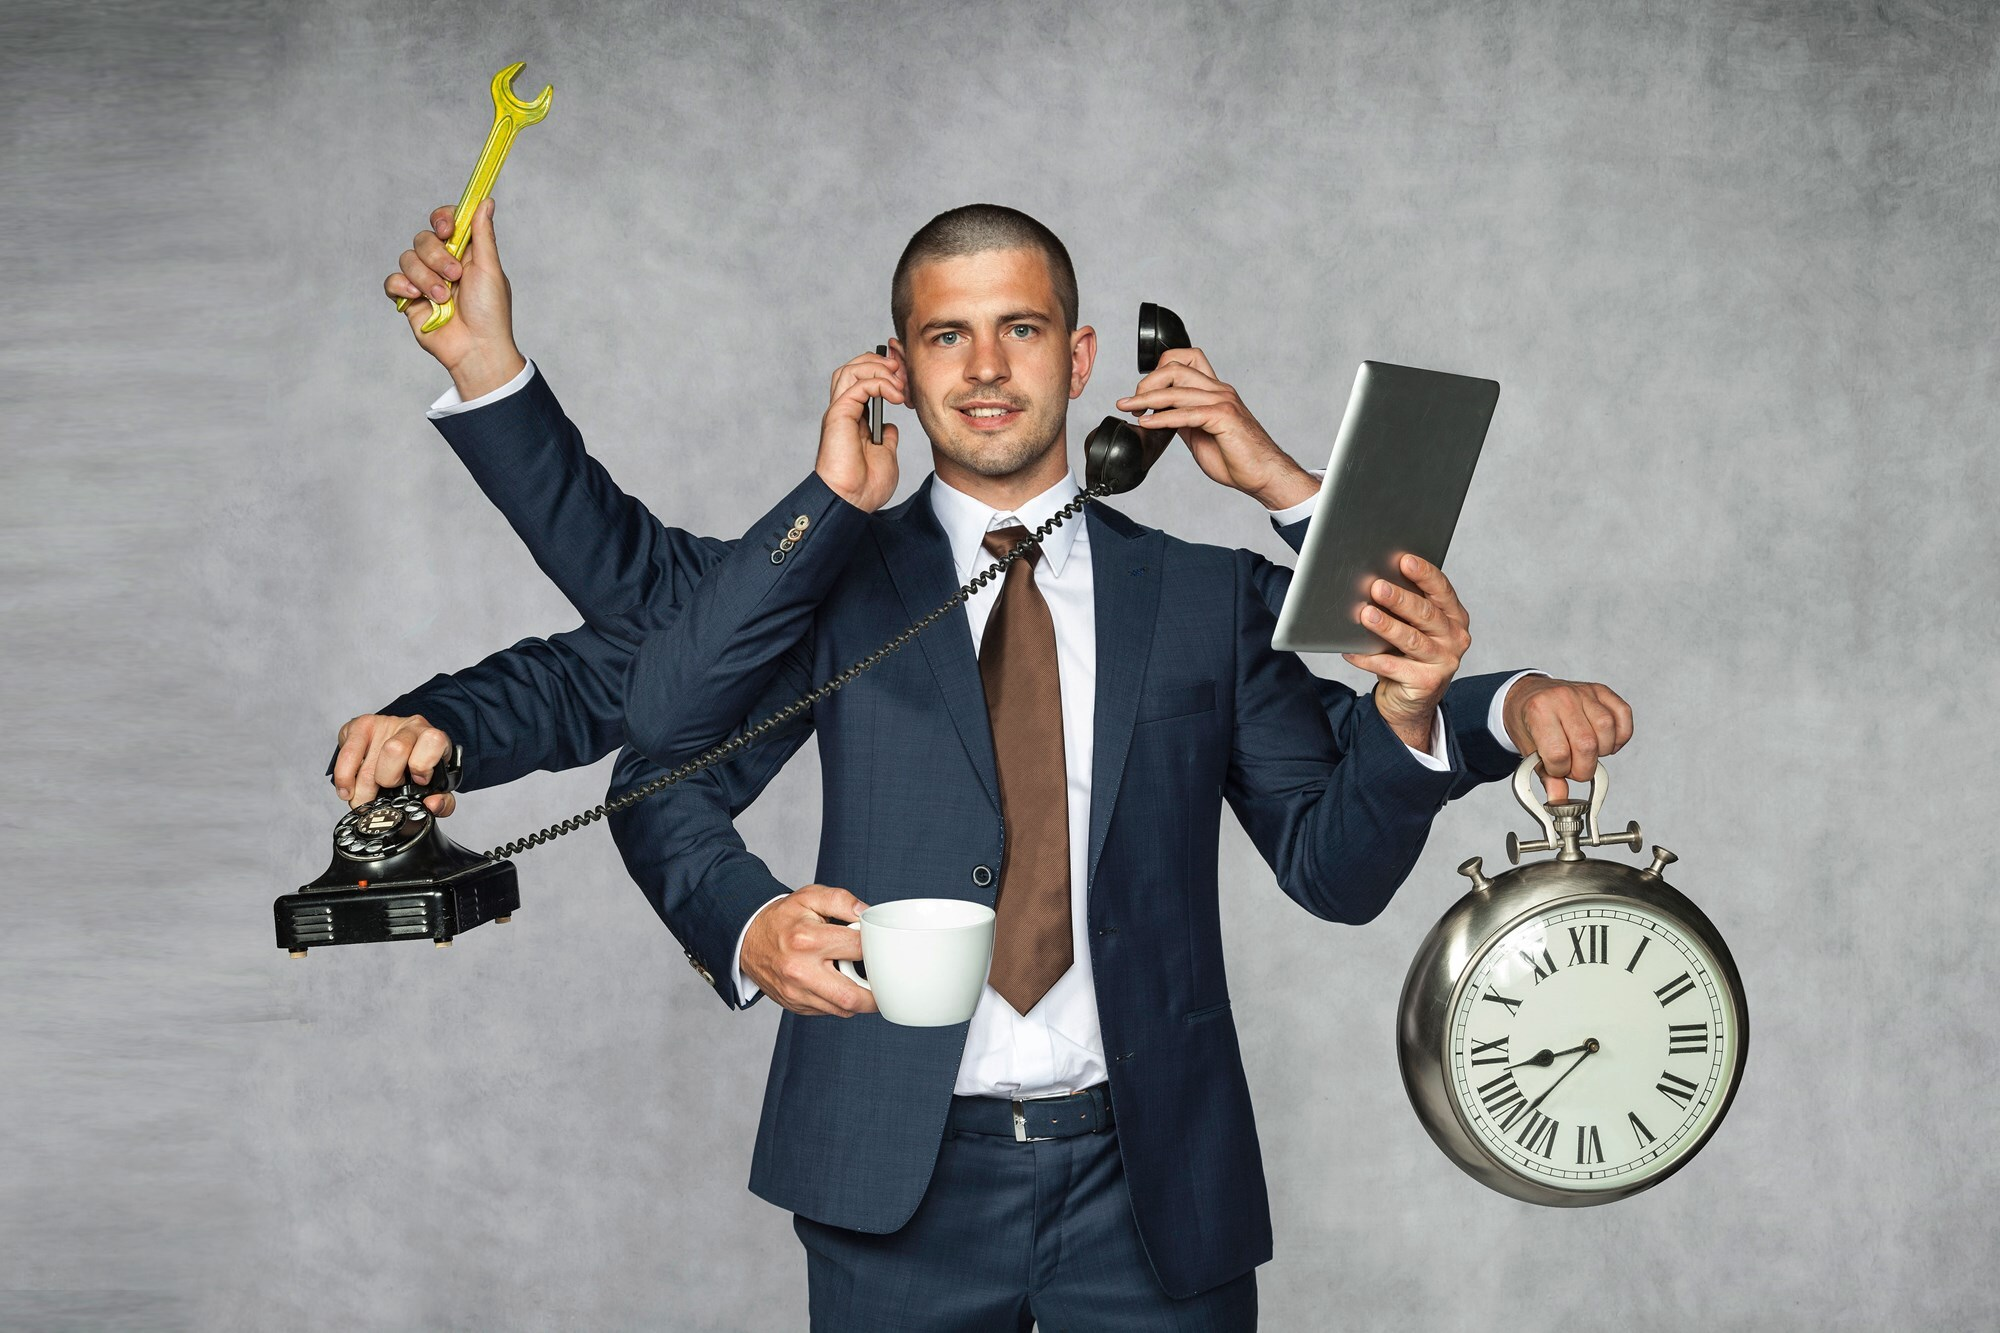 Time management and using it to fuel creativity